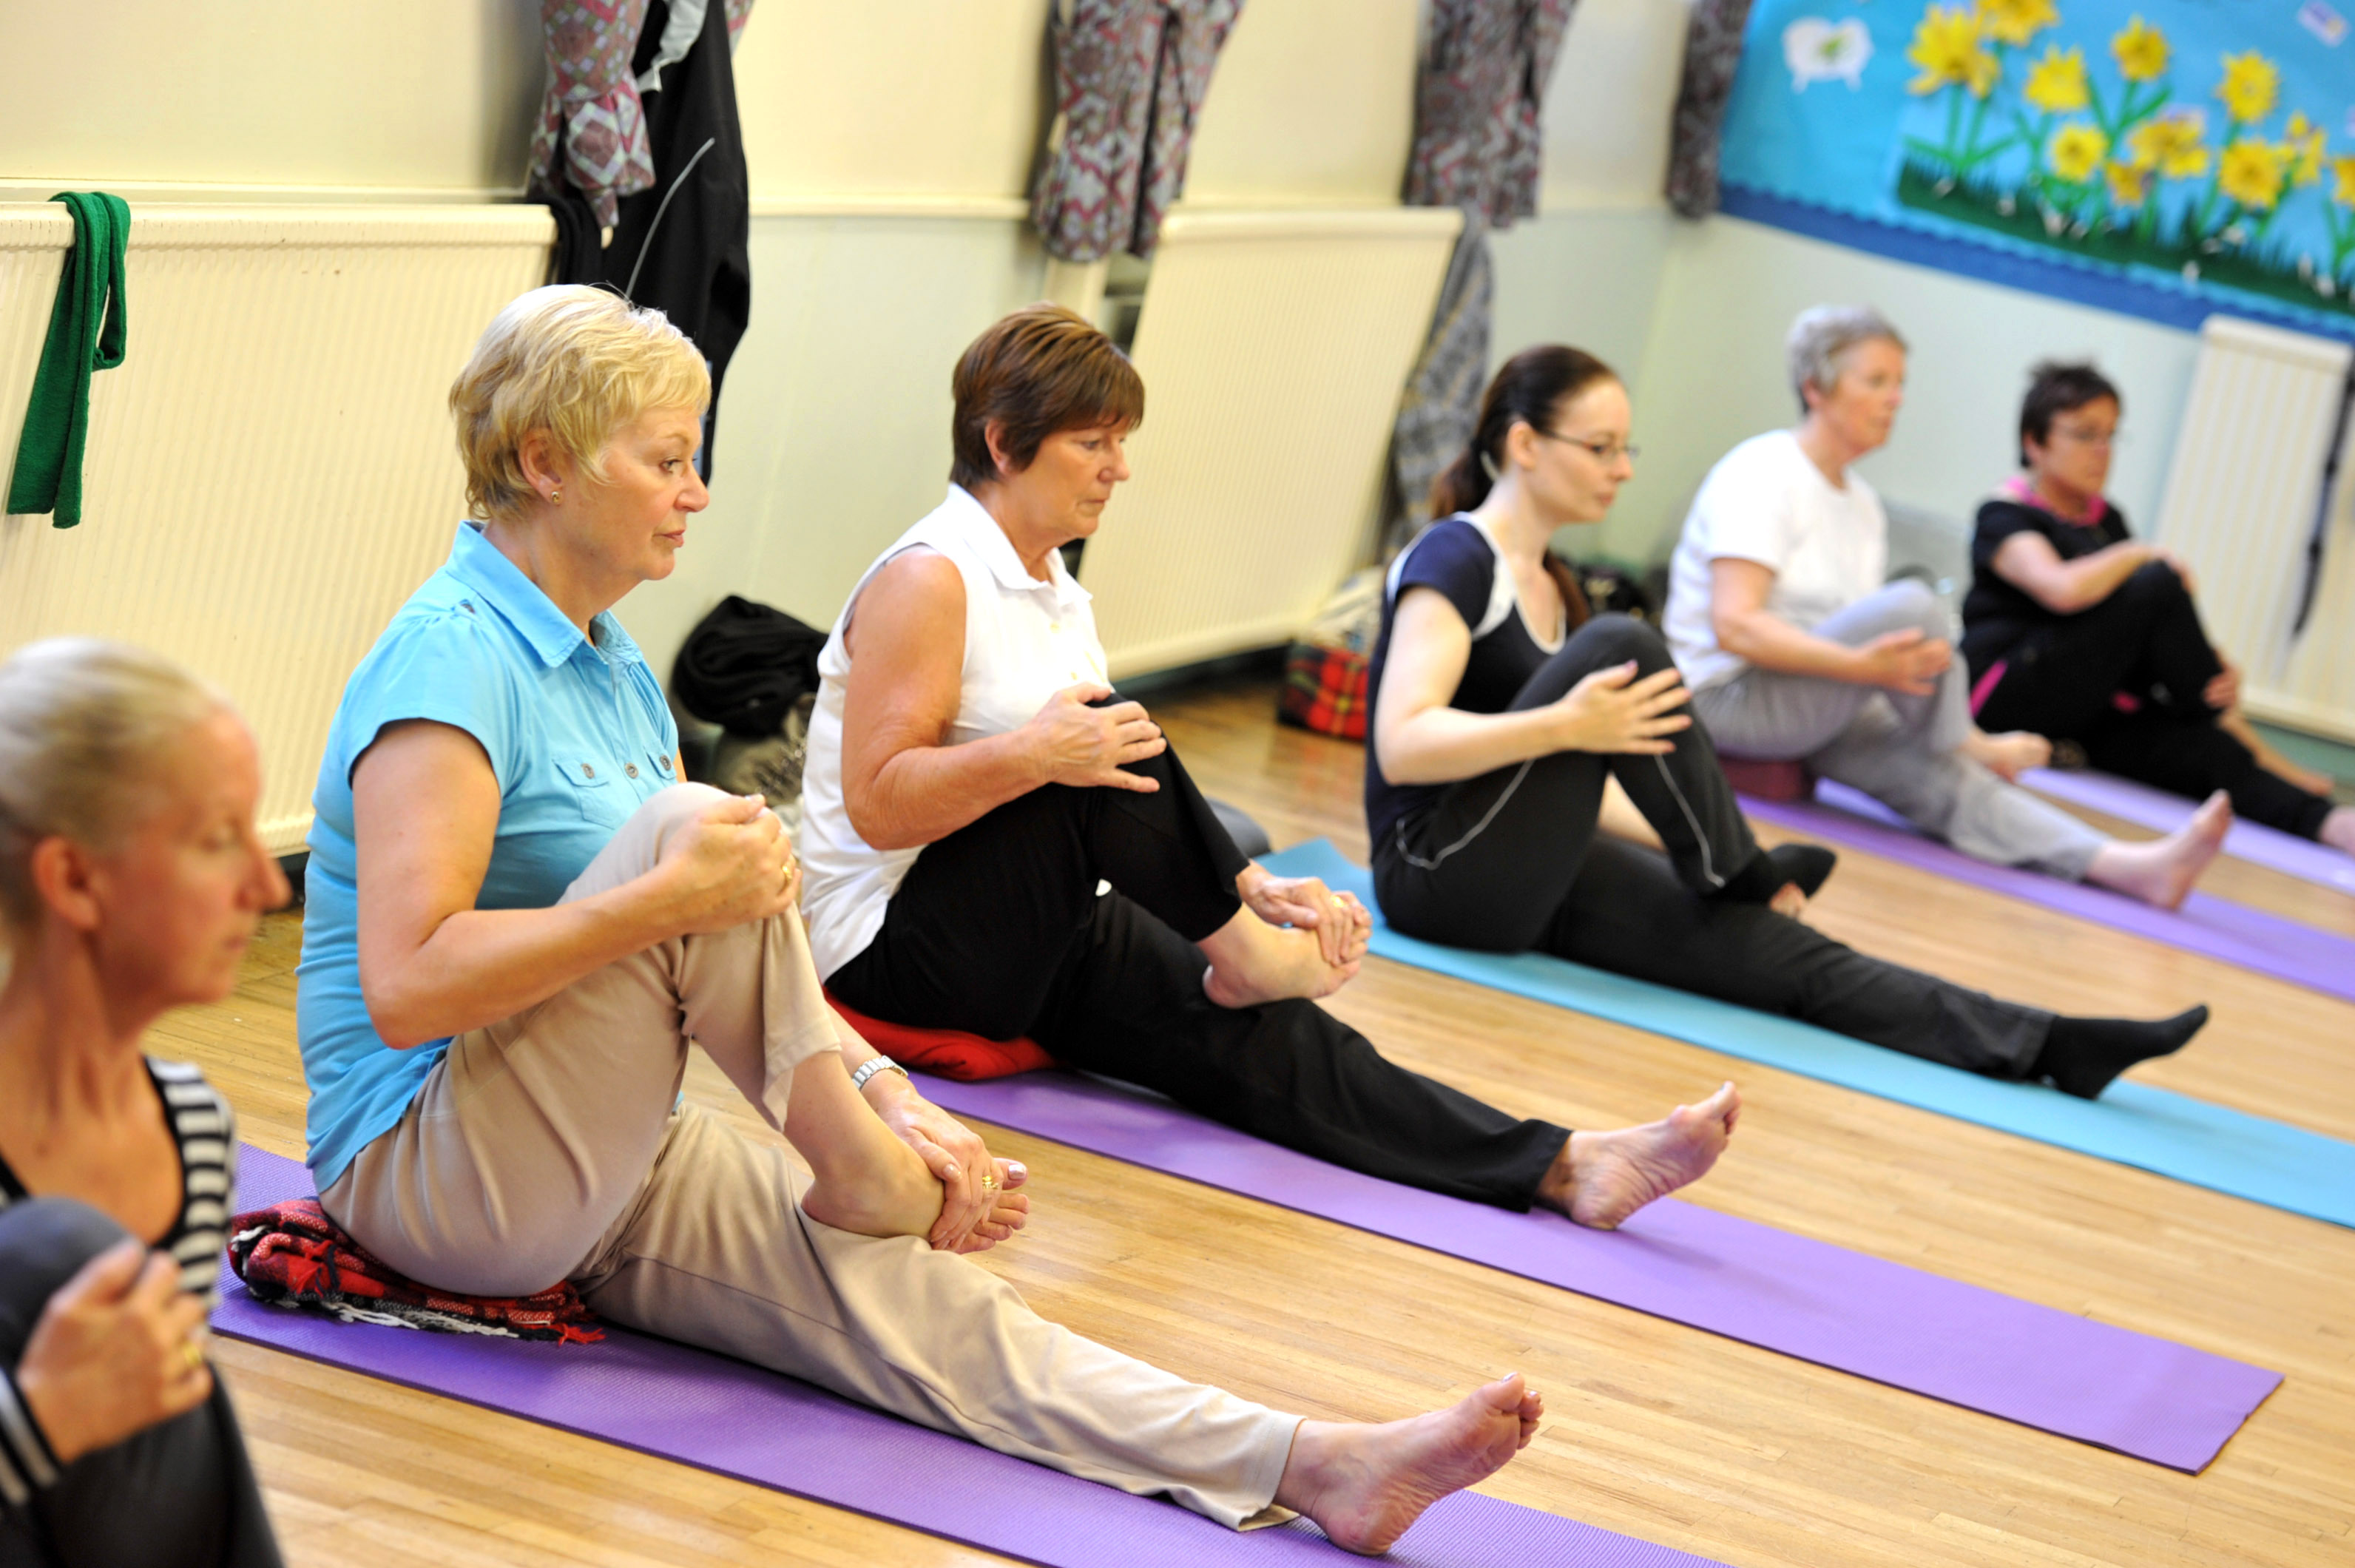 Yoga Classes begin on 18th Sept - Theberton Jubilee Hall